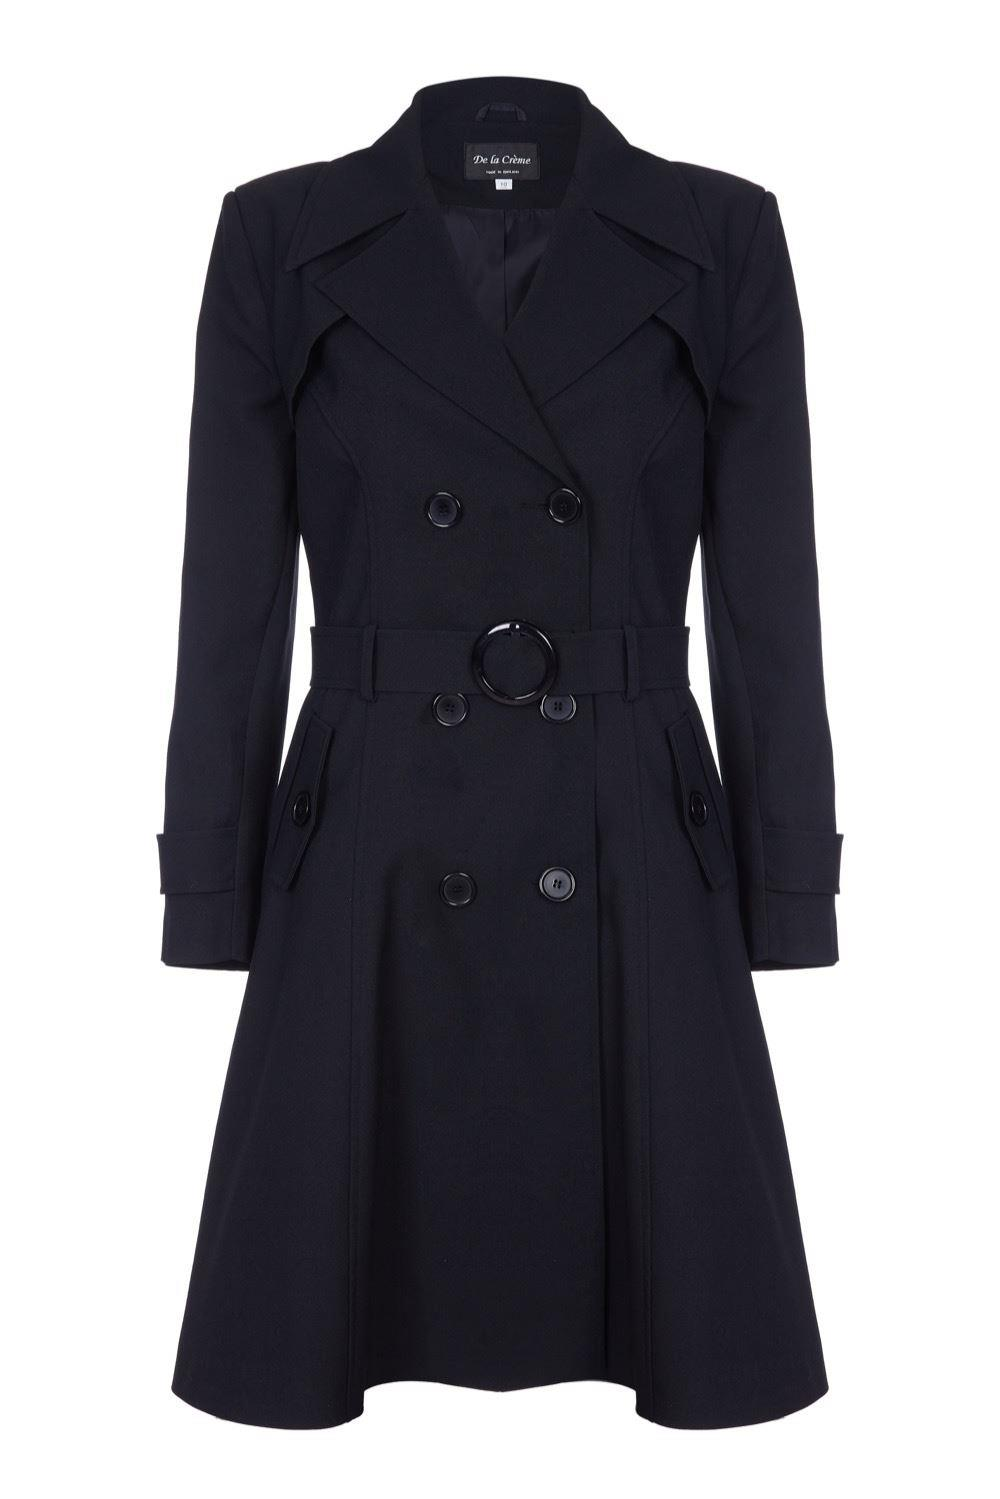 DE La Creme  - Women's Spring Belted Trench Coat